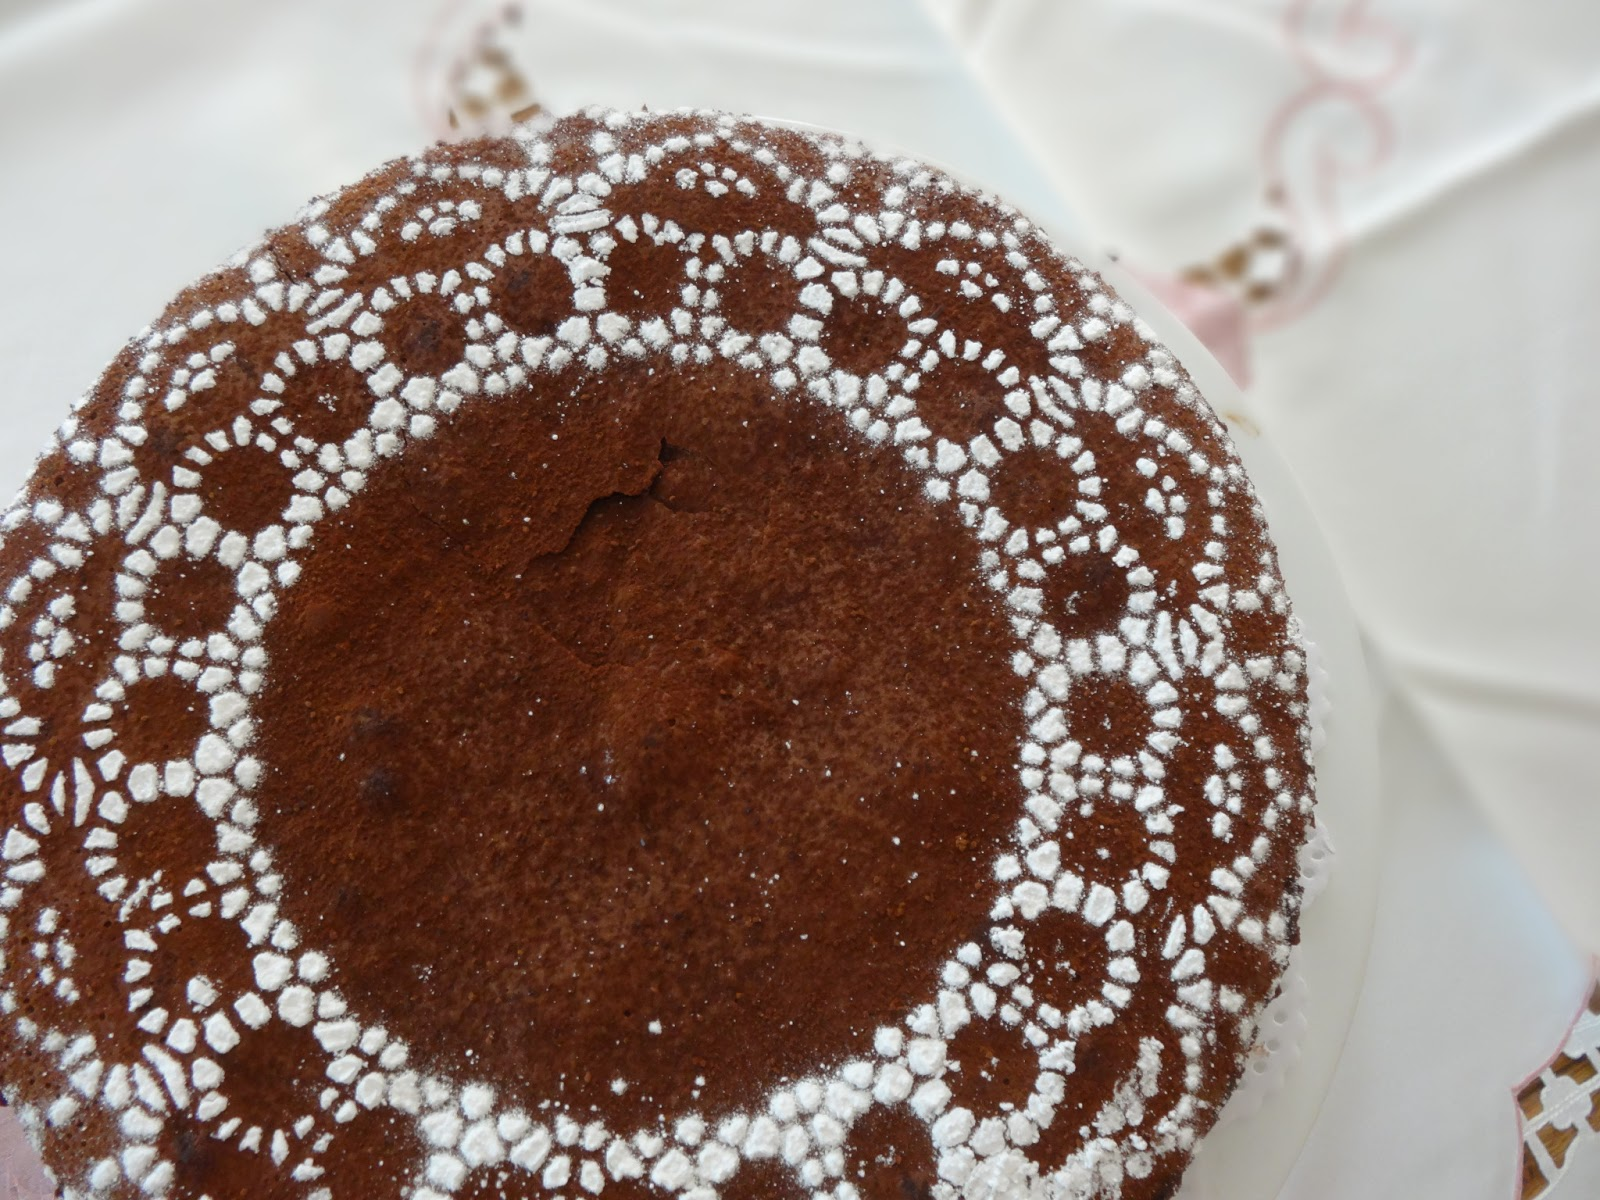 Cake Decoration From Chocolate : Rosie Bakes It: Flourless Chocolate Cake